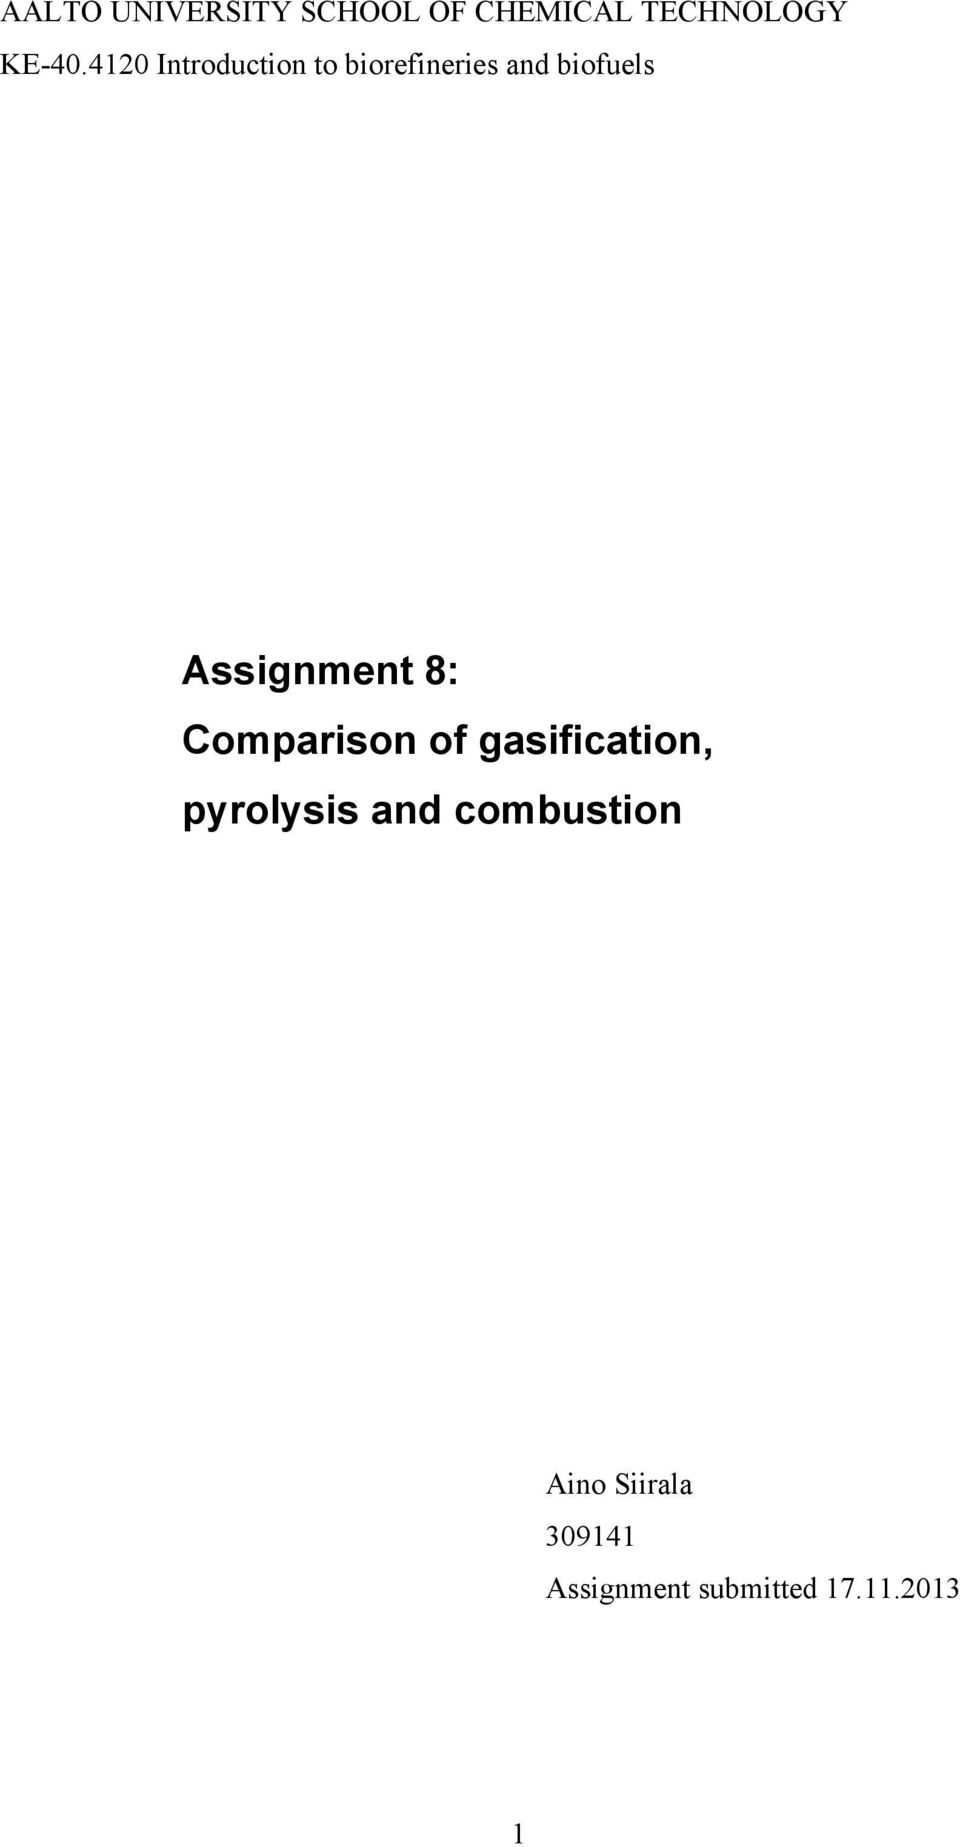 Assignment 8: Comparison of gasification, pyrolysis and